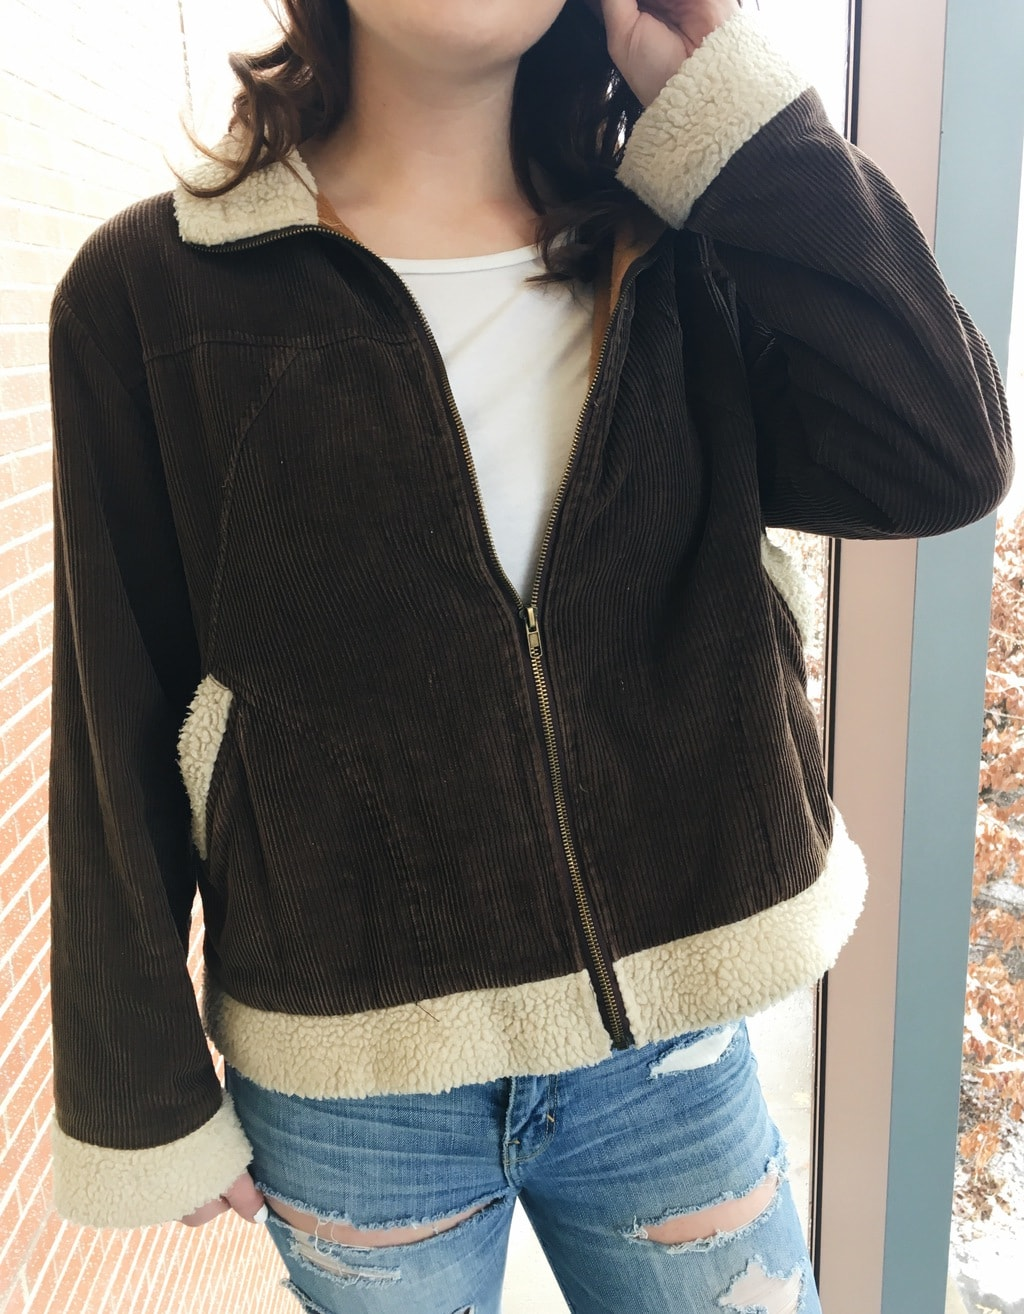 Erin's corduroy zip-up jacket has cream shearling details and a white tee underneath.